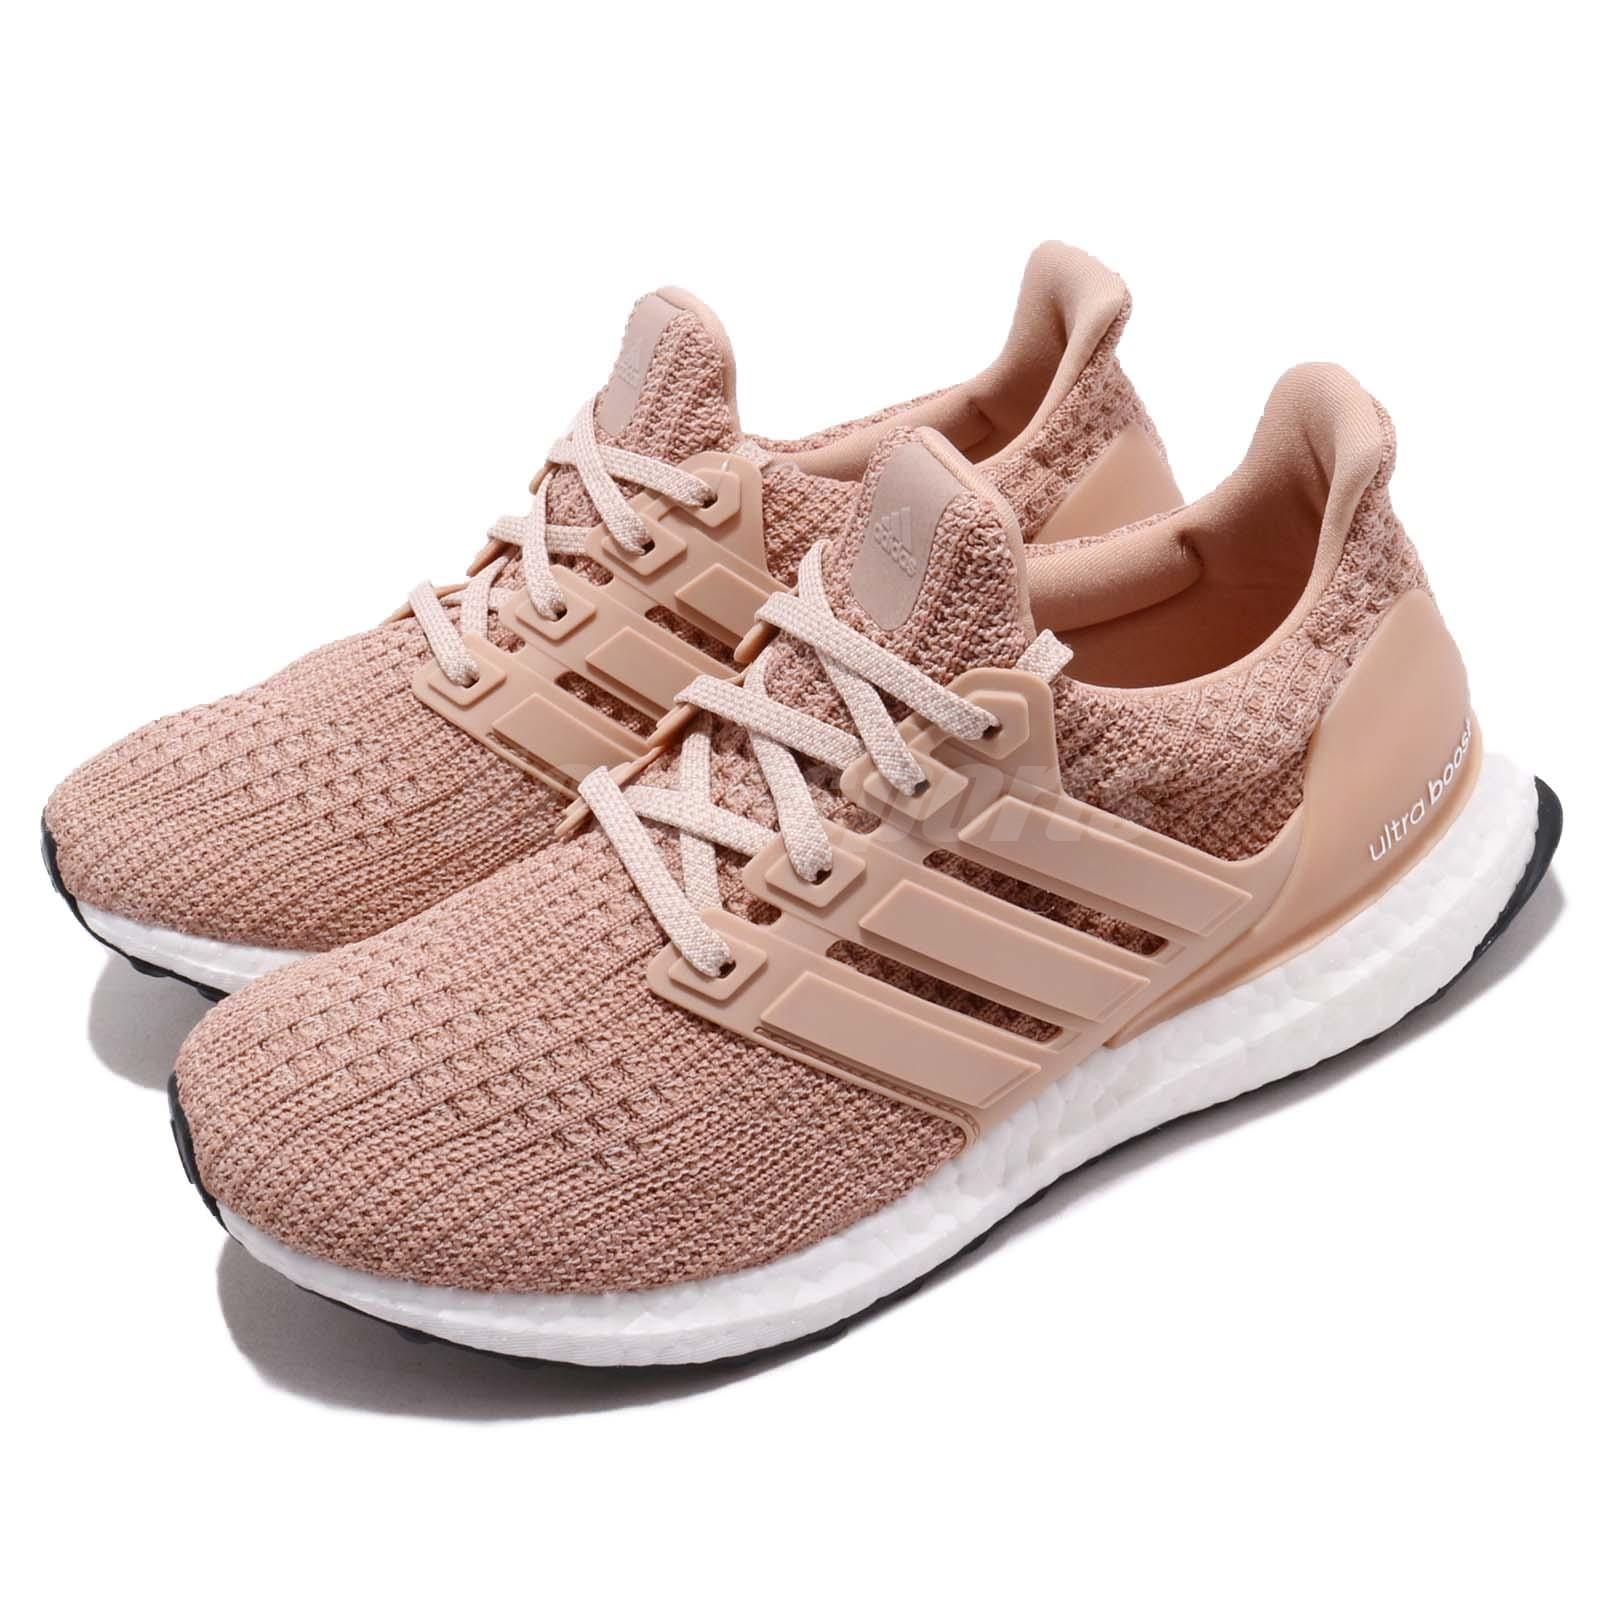 info for 552dd 307ae Details about adidas UltraBOOST W 4.0 Ash Pearl Pink Womens Running Shoes  BOOST BB6309